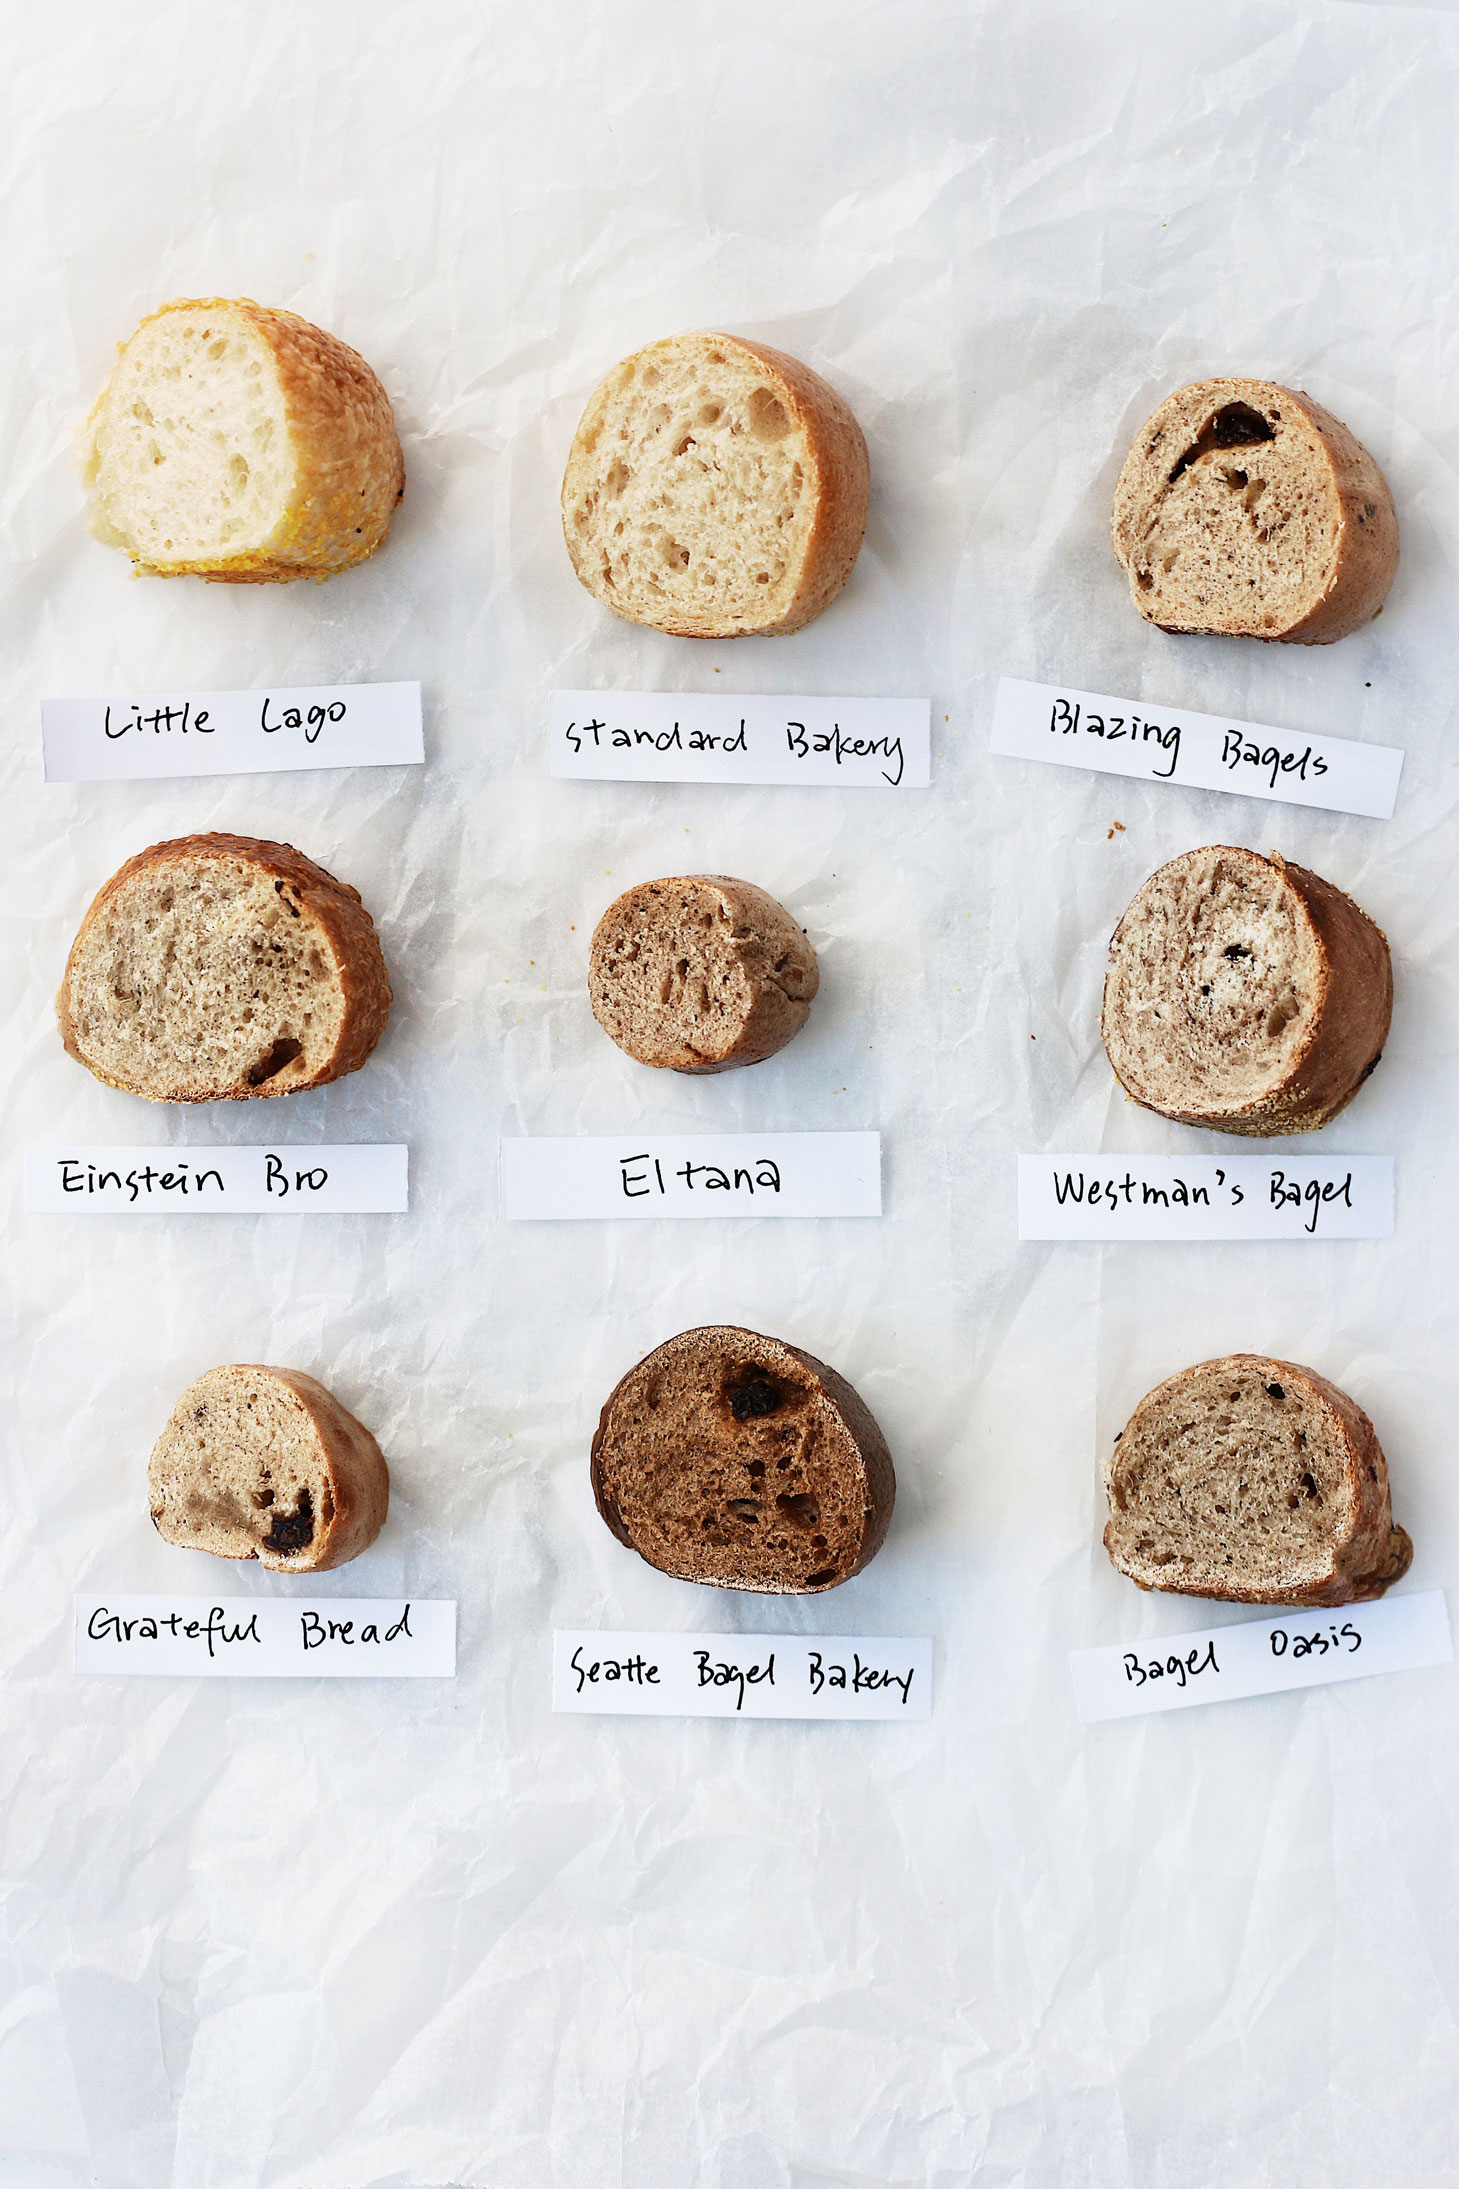 best-bagel-in-seattle-great-bagel-off-cinnamon-raisin-cut-all